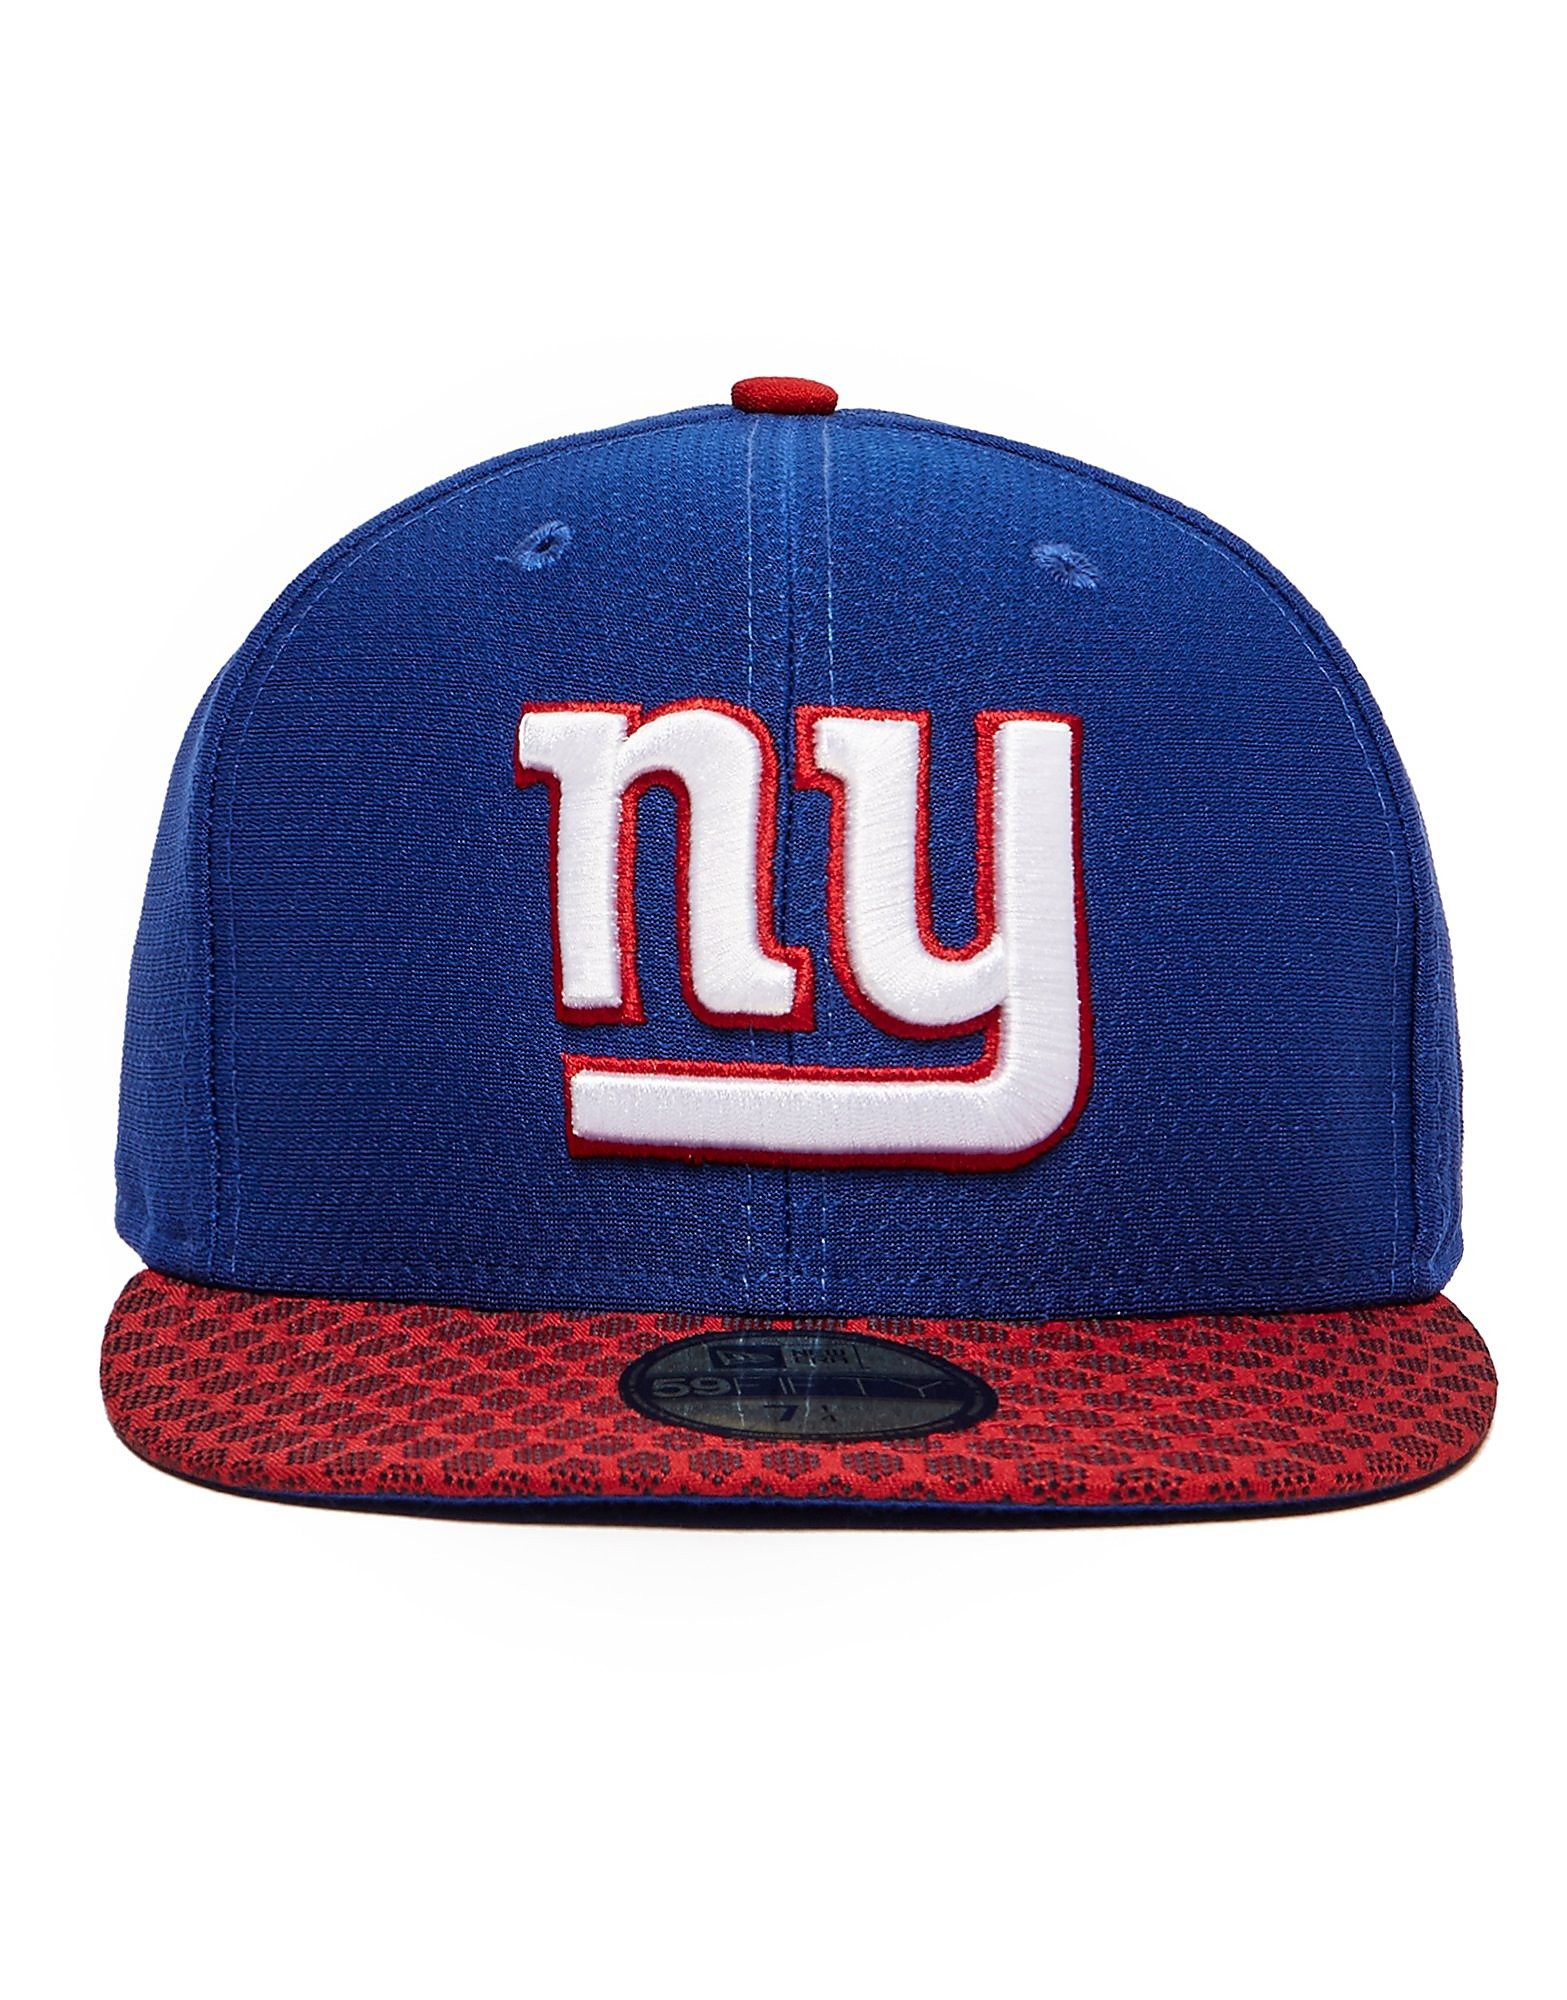 New Era New York Giants 59FIFTY Cap